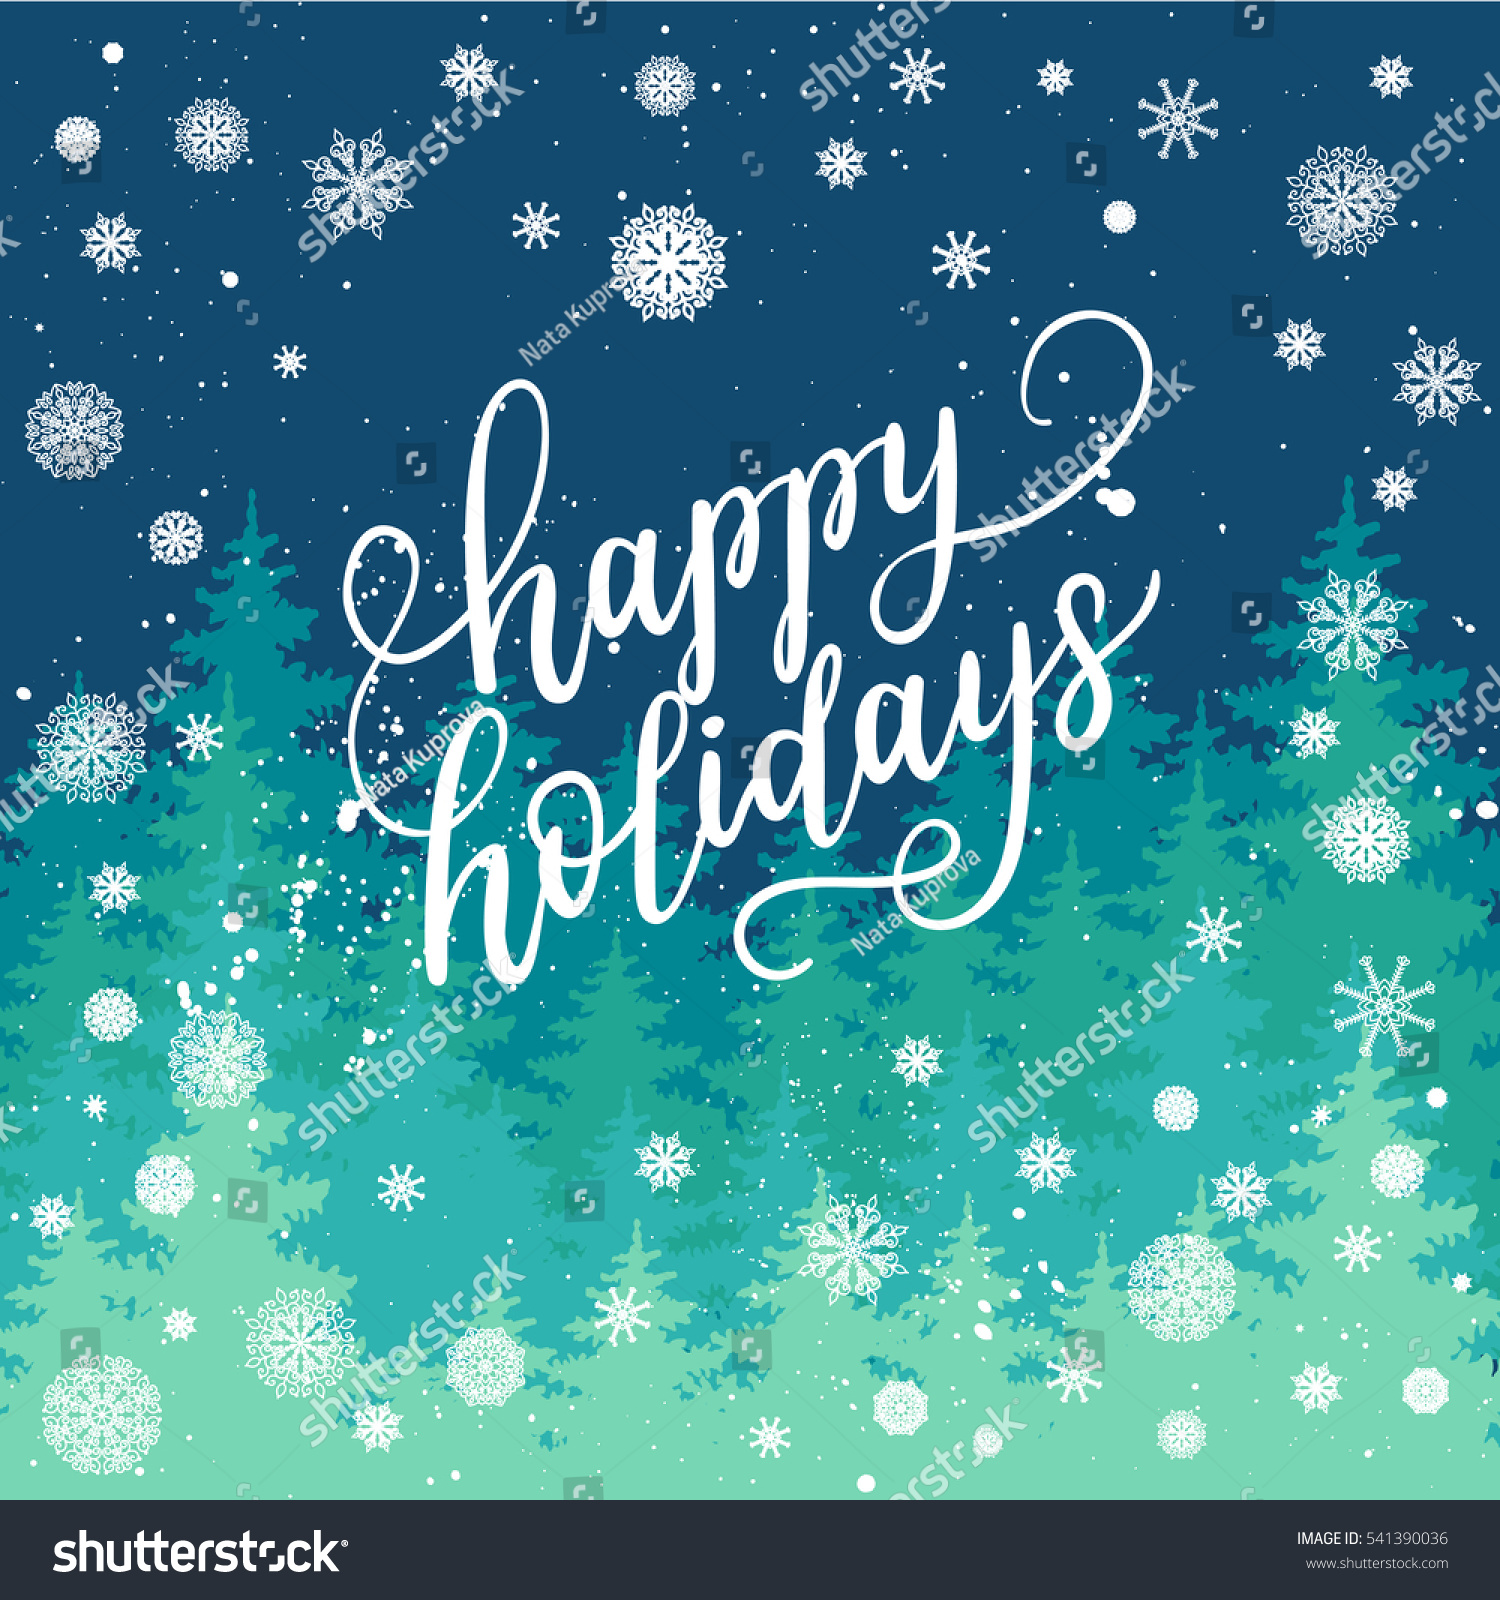 Happy Holidays Greeting Card New Year Stock Vector Royalty Free